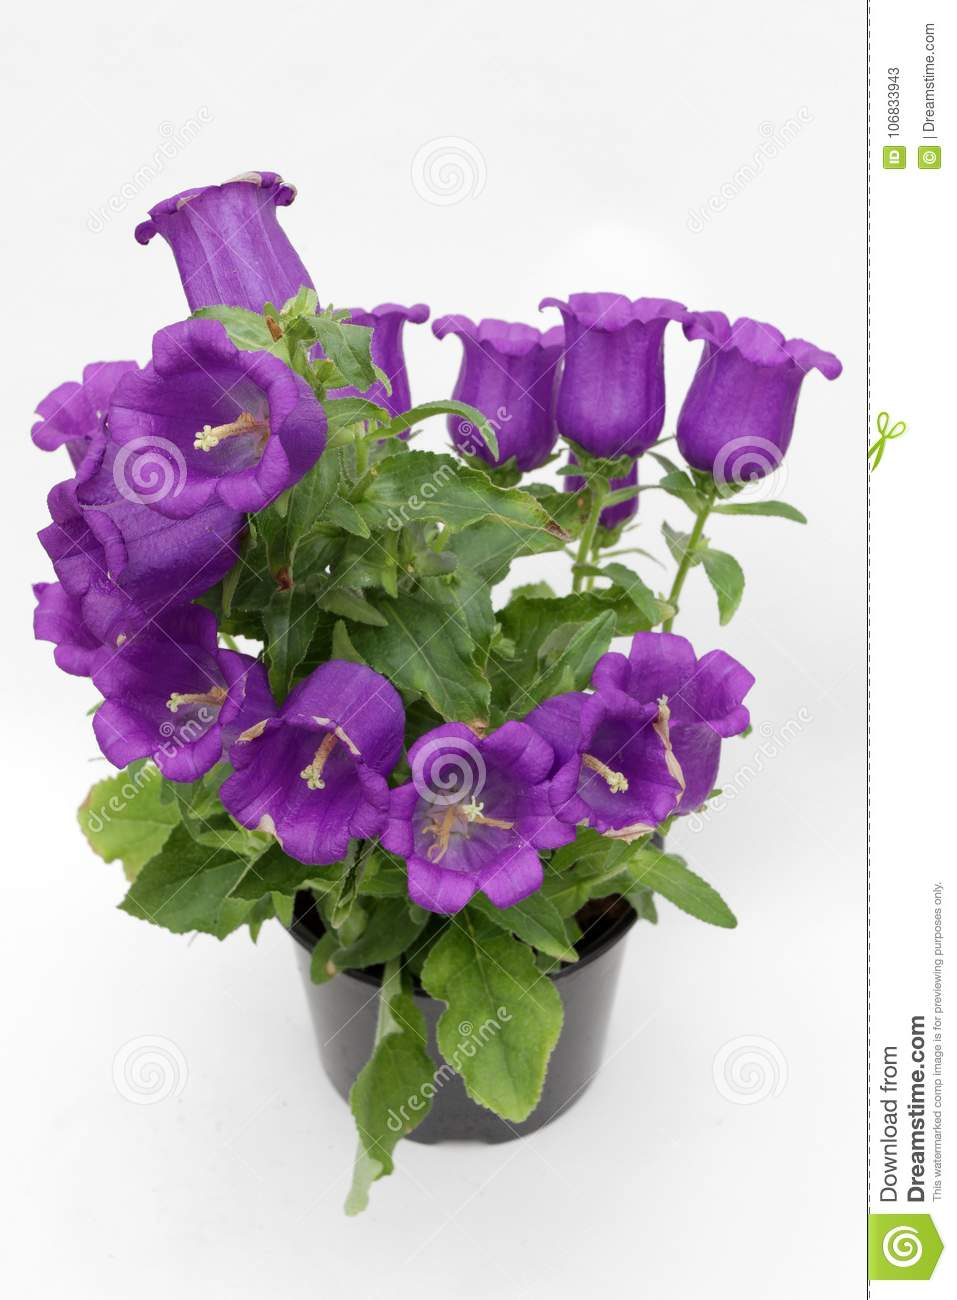 Campanula Blooming Violet Bellflowers Isolated On White Background